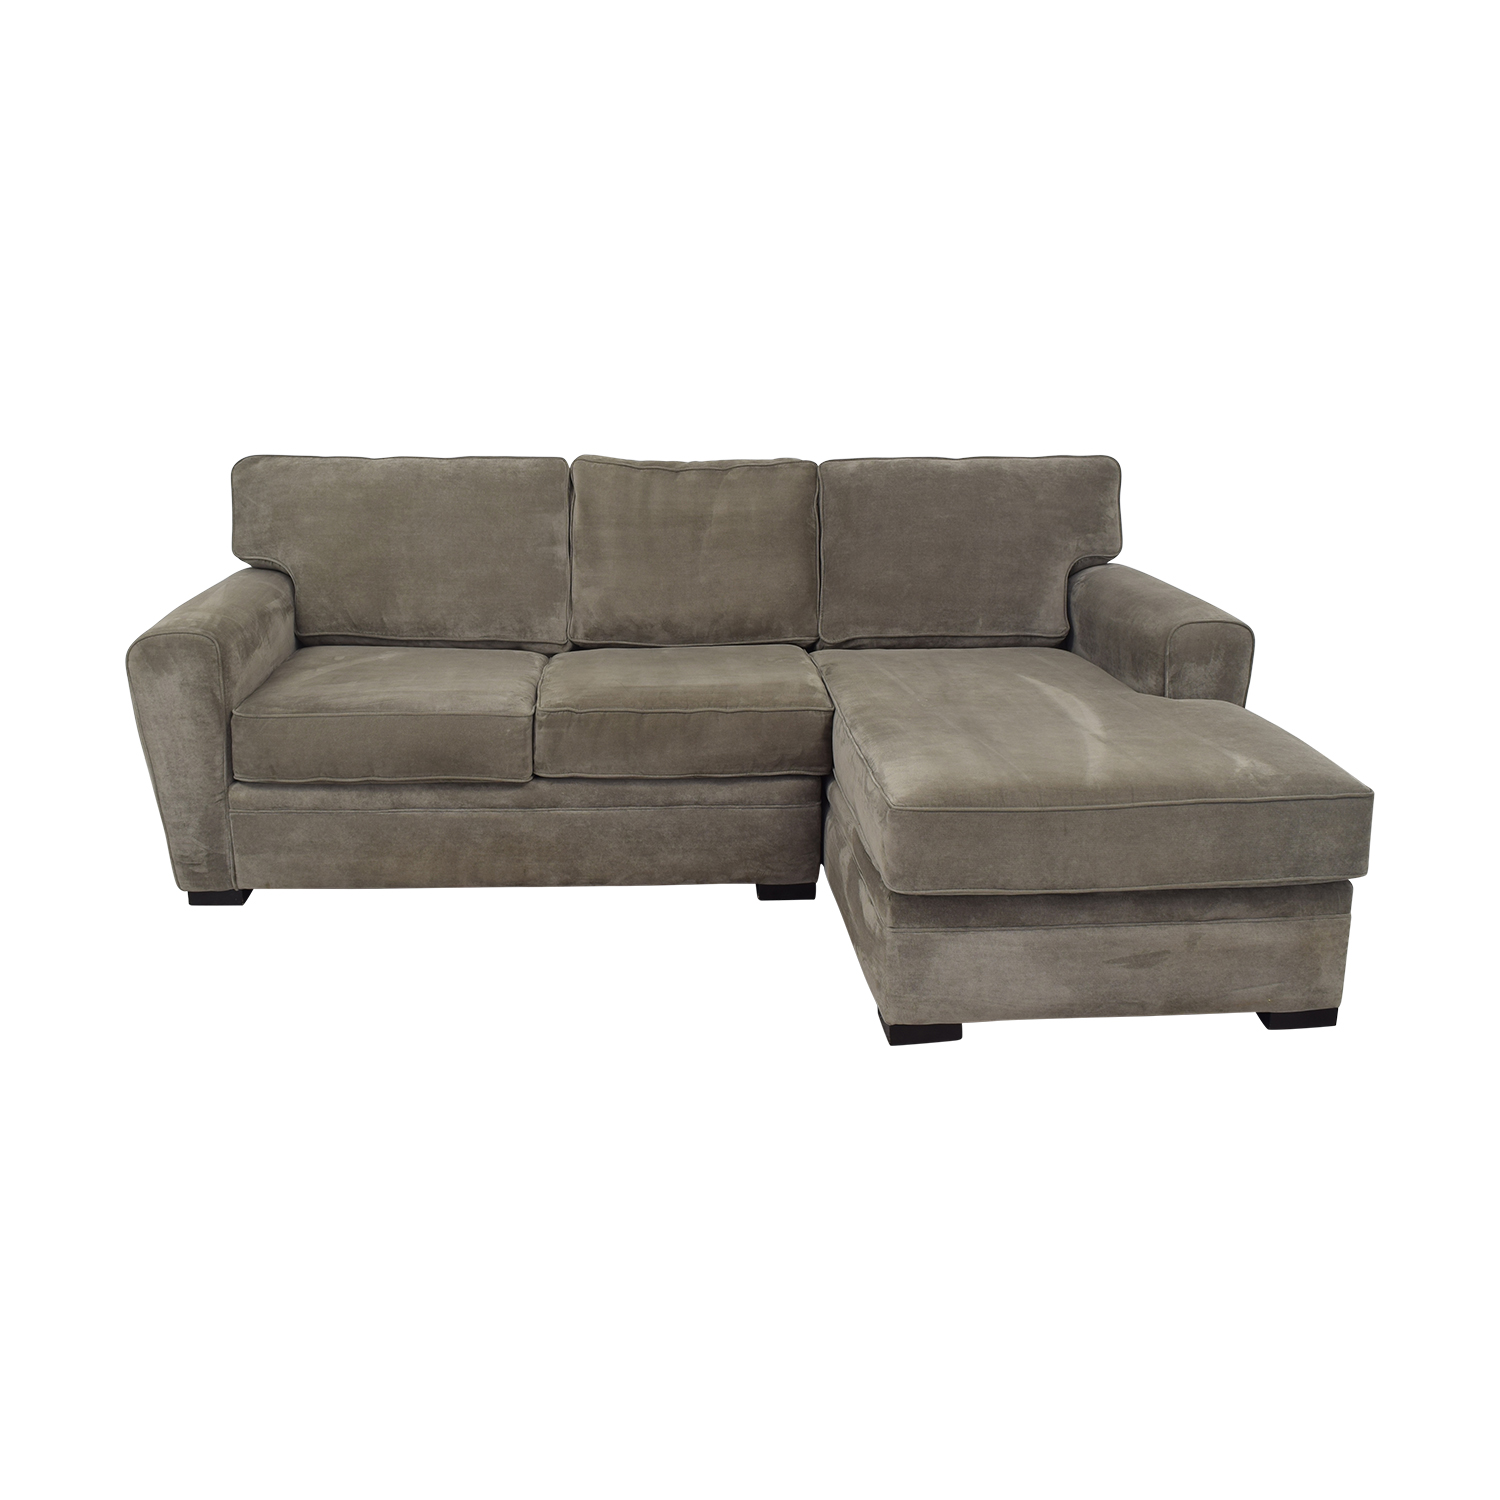 buy Raymour & Flanigan Artemis II Microfiber Sectional Sofa Raymour & Flanigan Sectionals